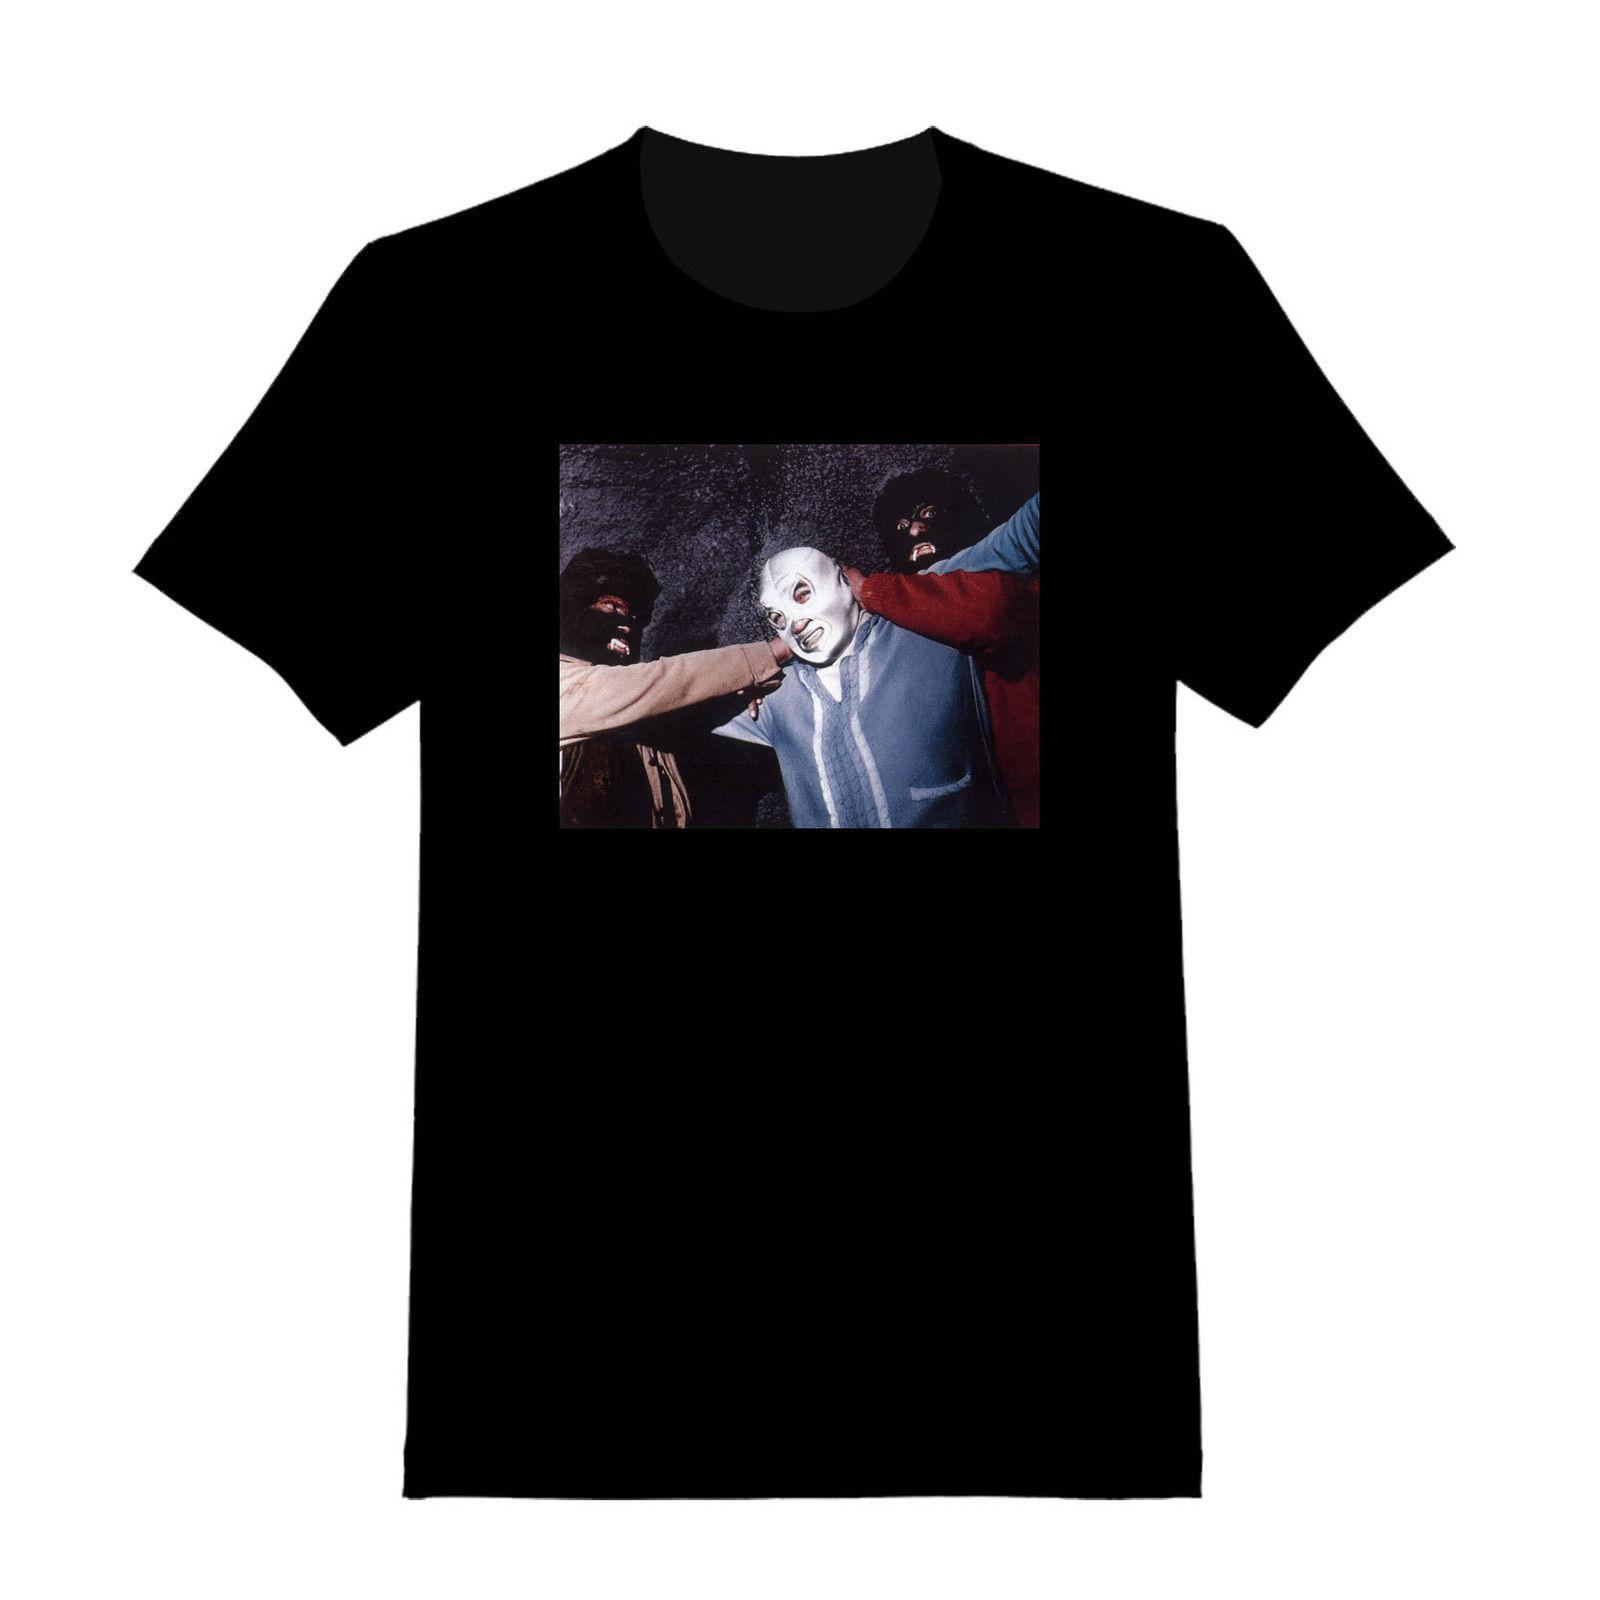 El Santo  2 Custom T Shirt 075 Custom Design Funny Customized Shirts Your  Own Shirt 100% Cotton Short Sleeve O Neck Tops Day Shirt Tee T From  Lanselstore d0aaa7e64